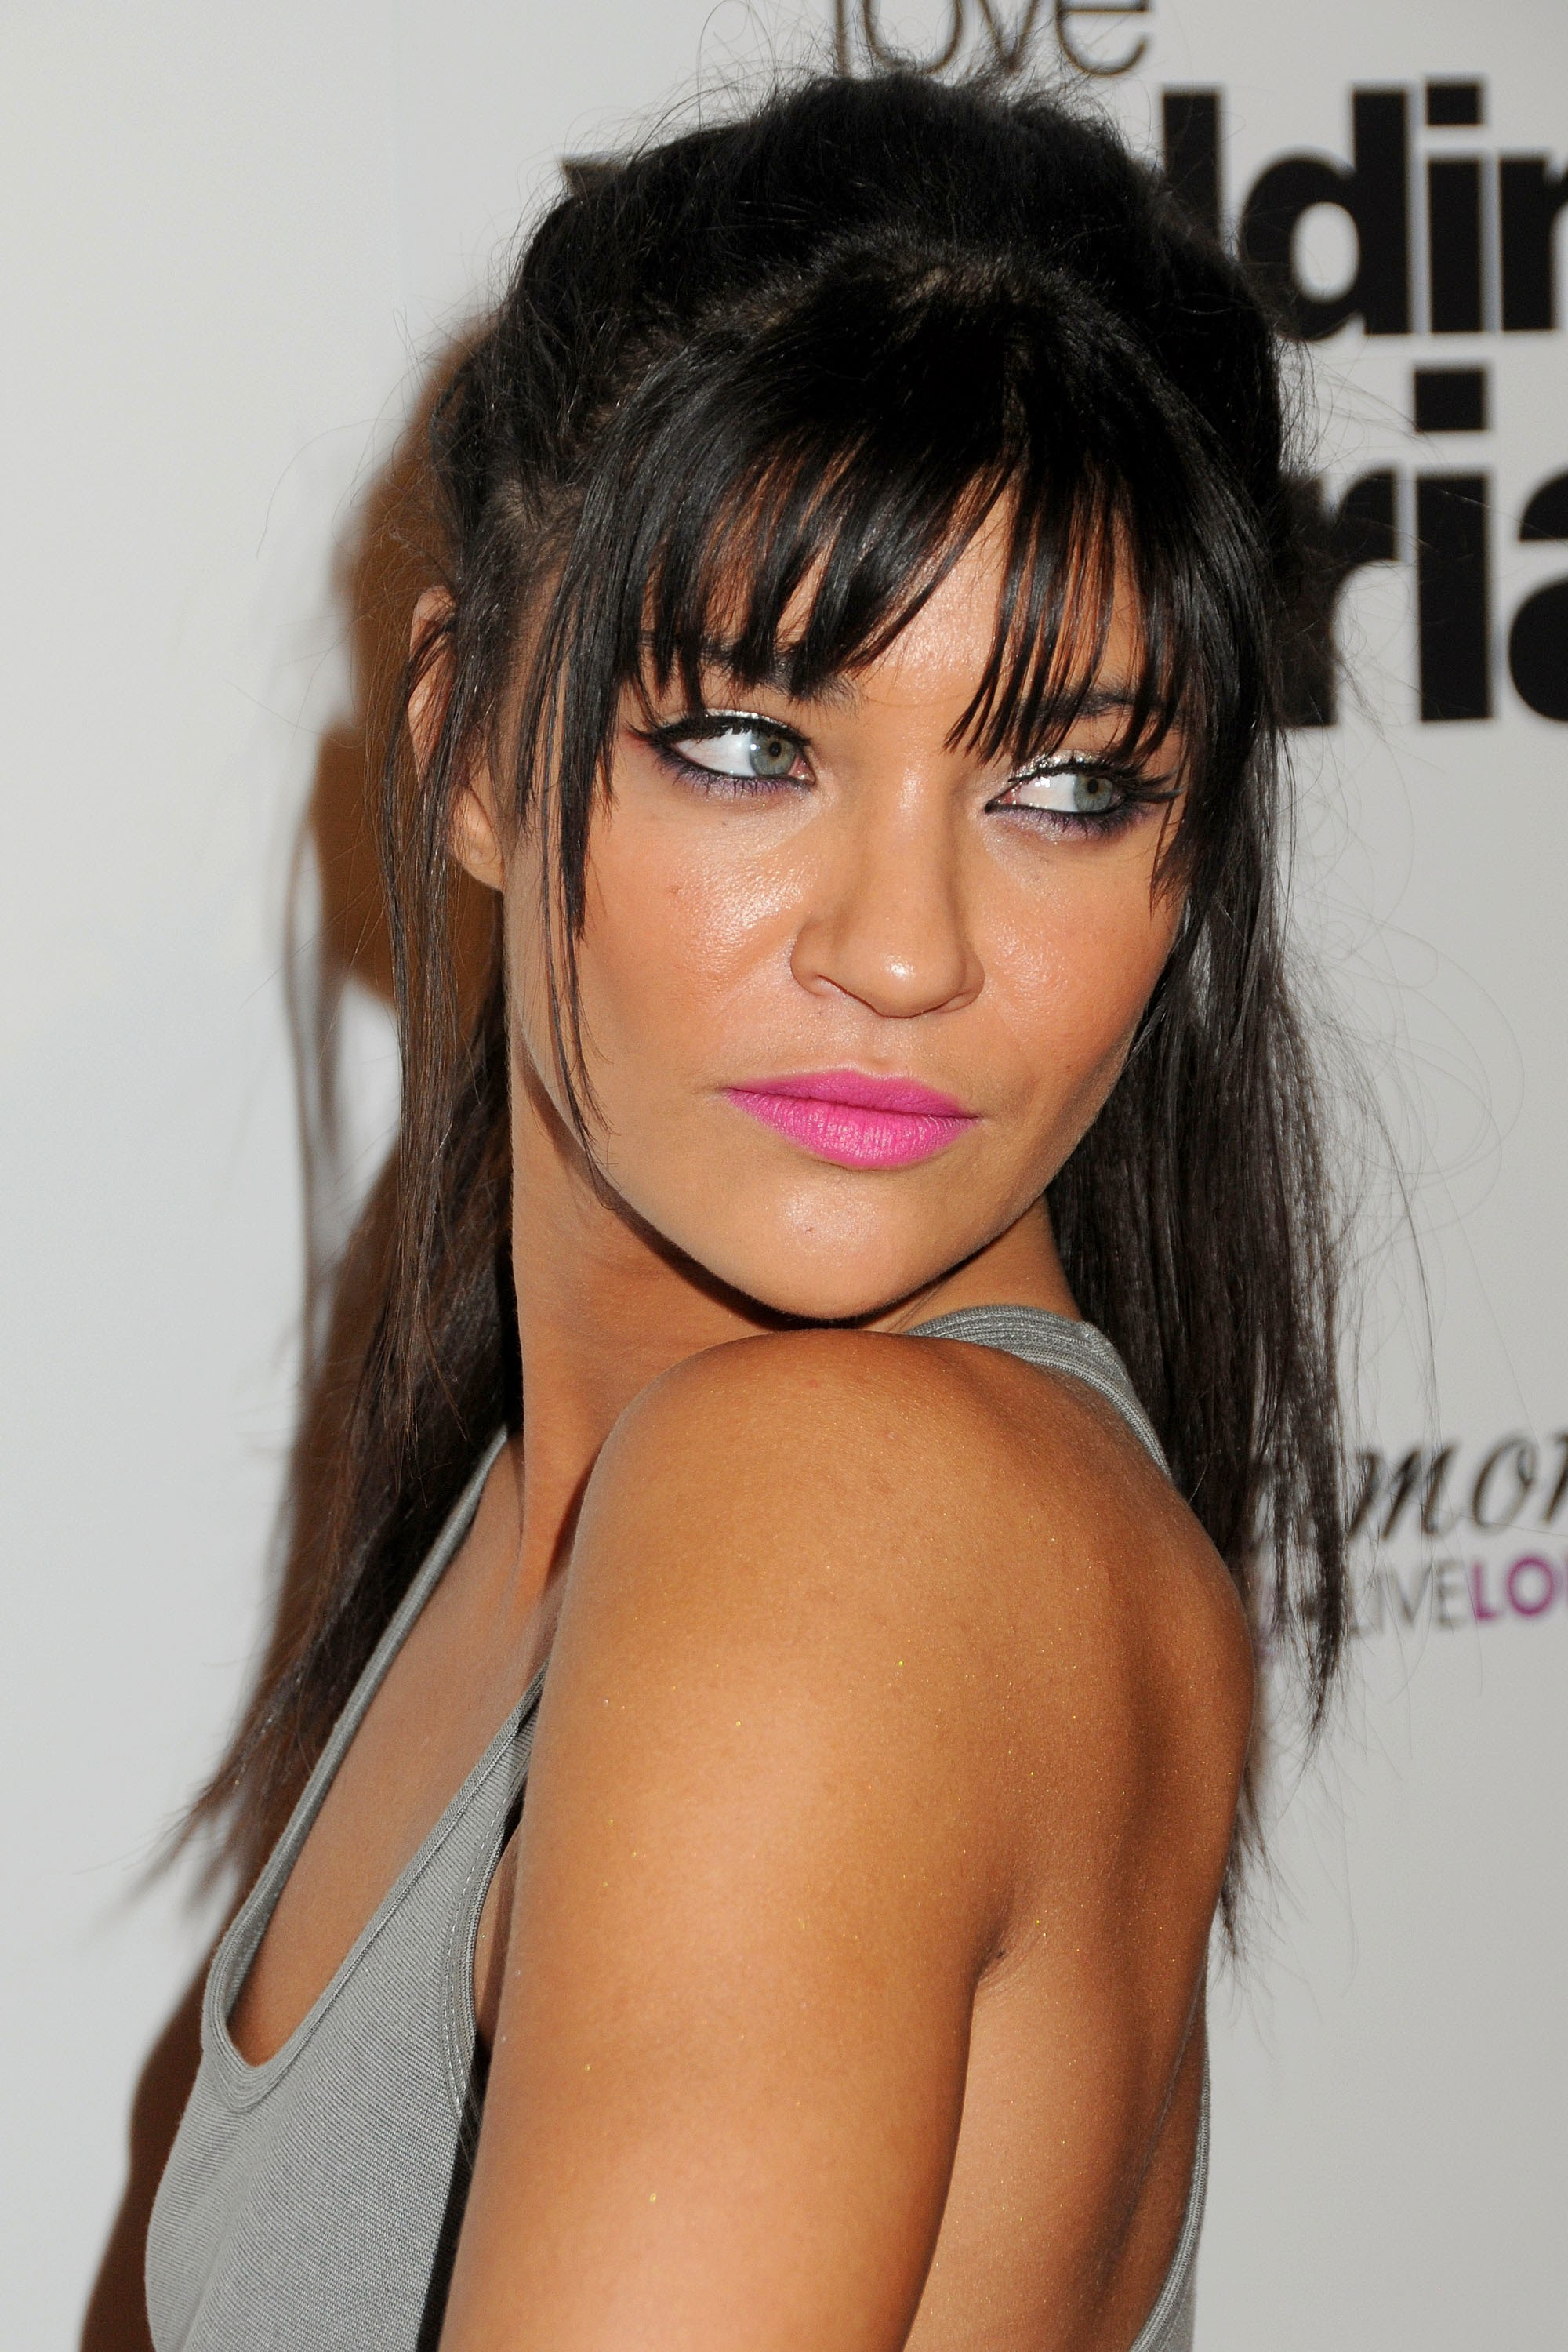 Jessica Szohr Summary in addition 685833 1990 Chevy Caprice further  on search ls 004